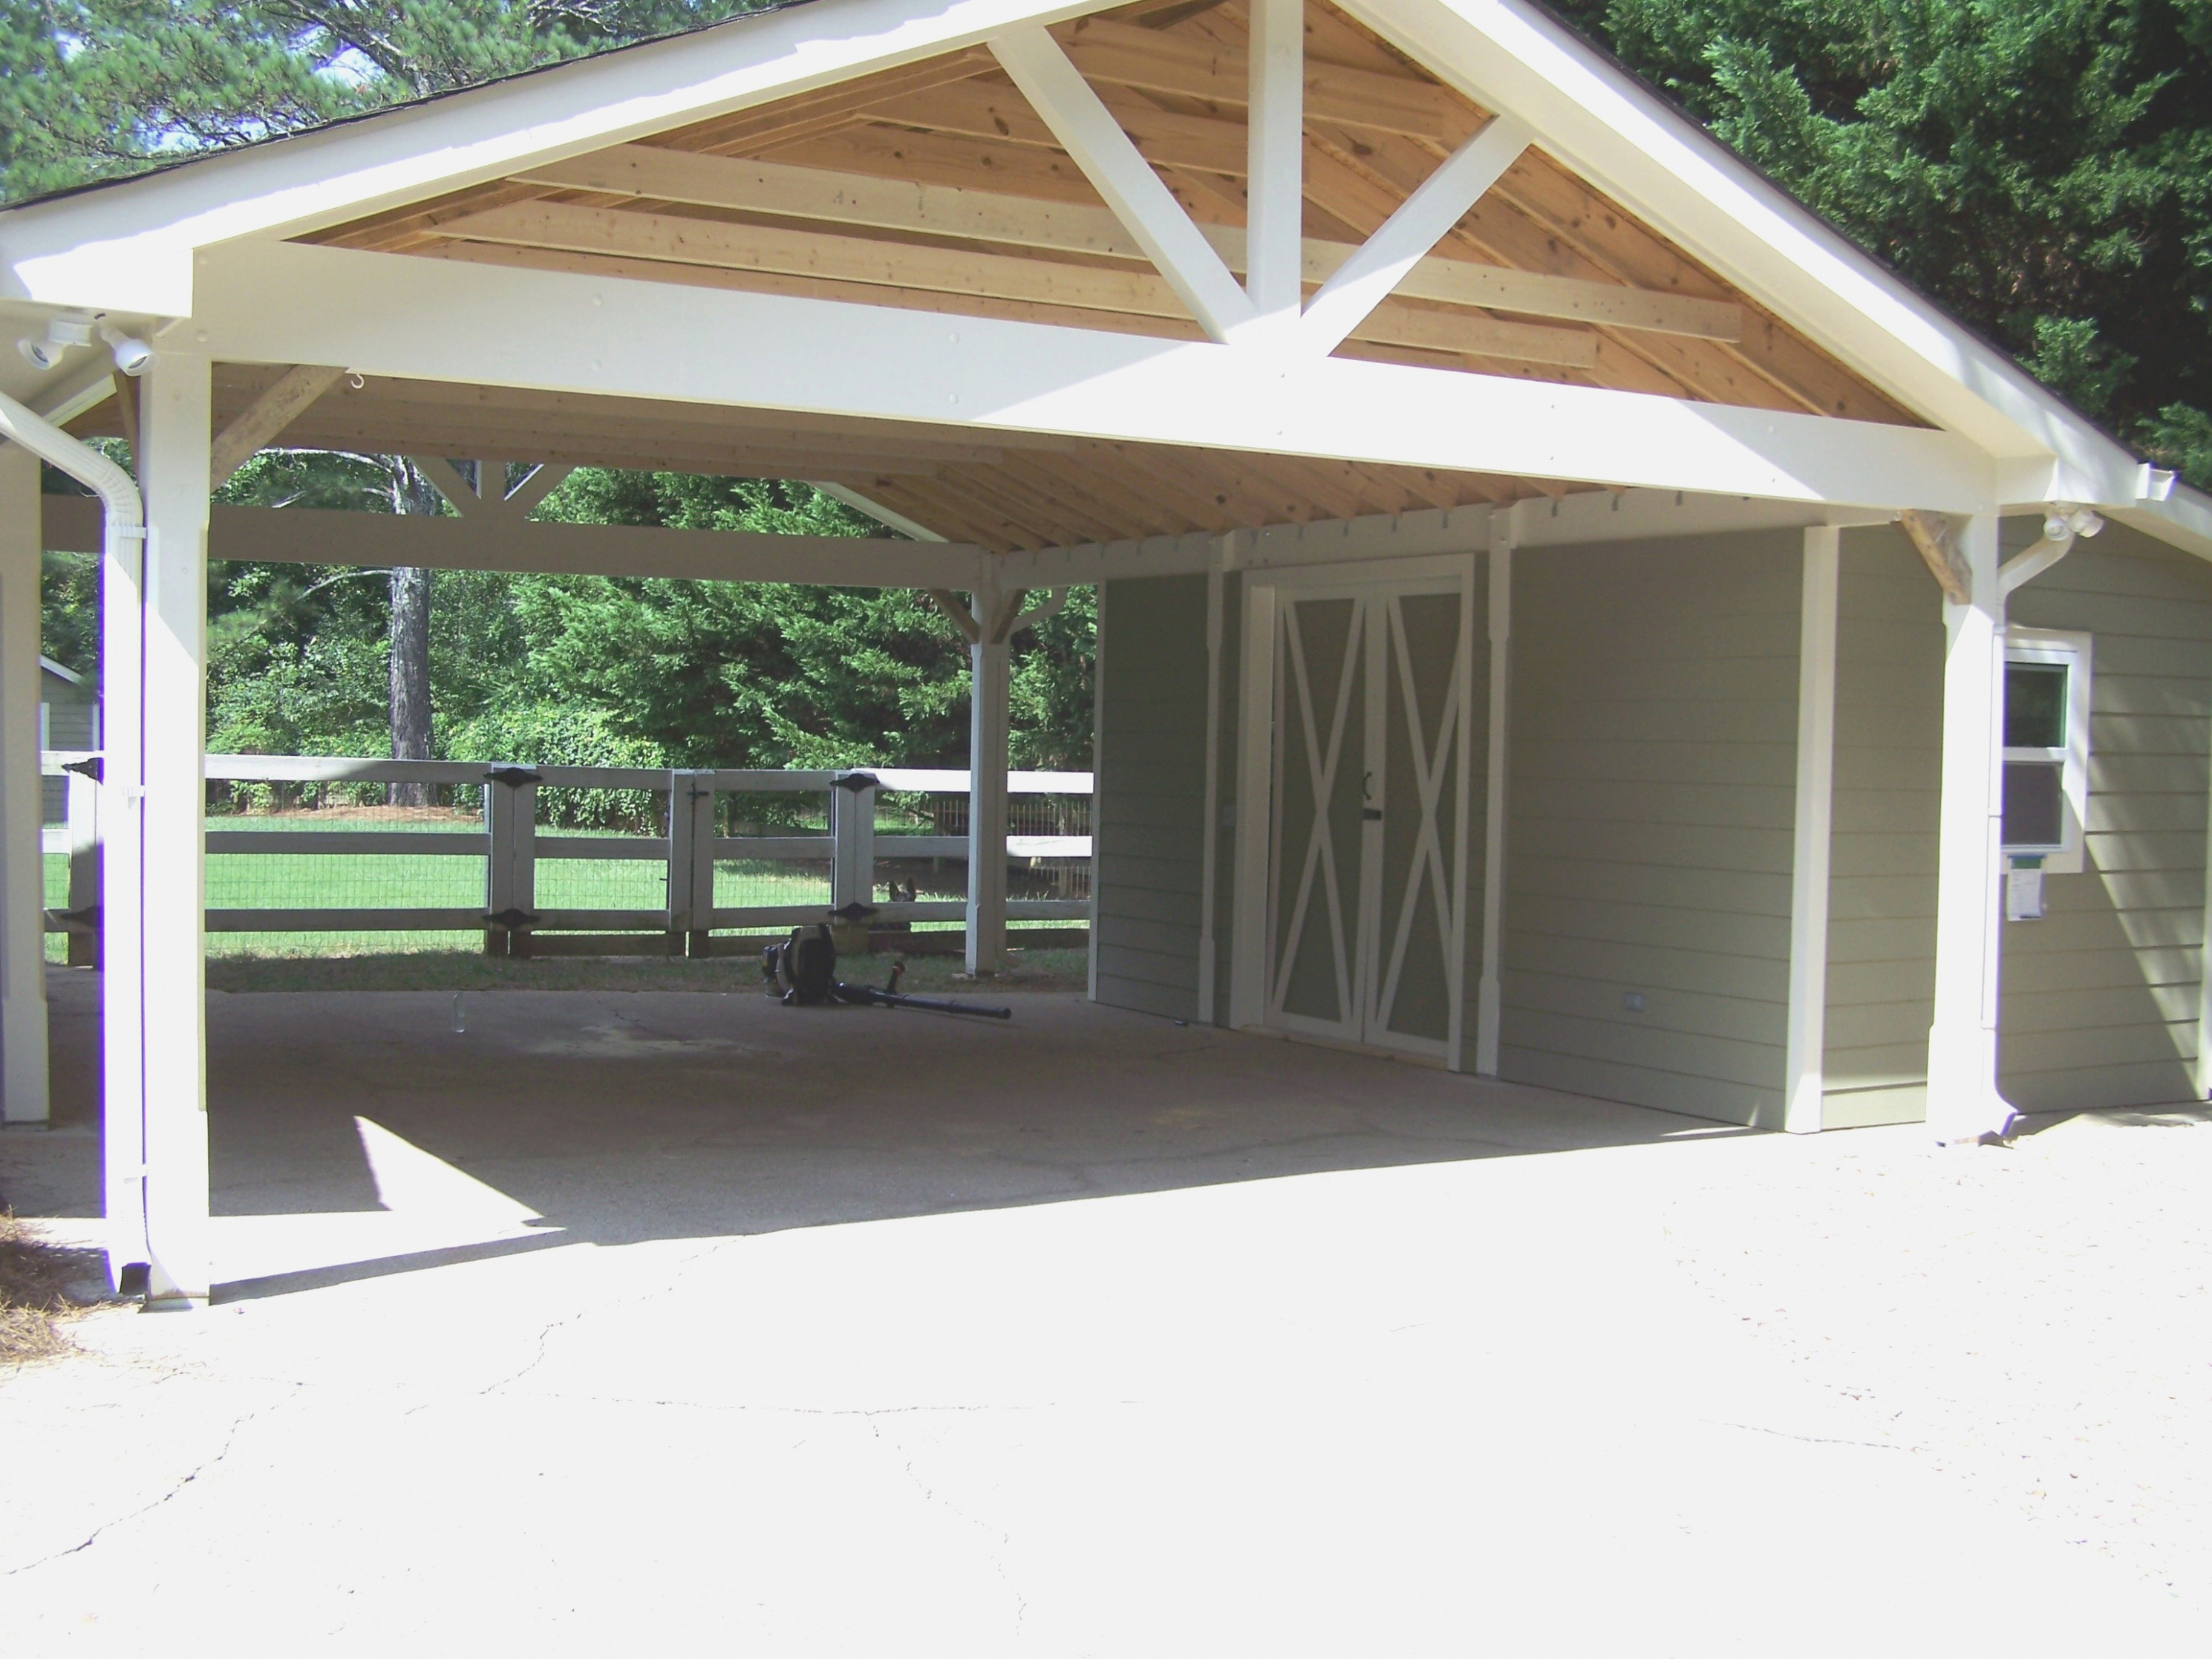 Carport Designs Attached House Outdoor Simple Yet Highly ..